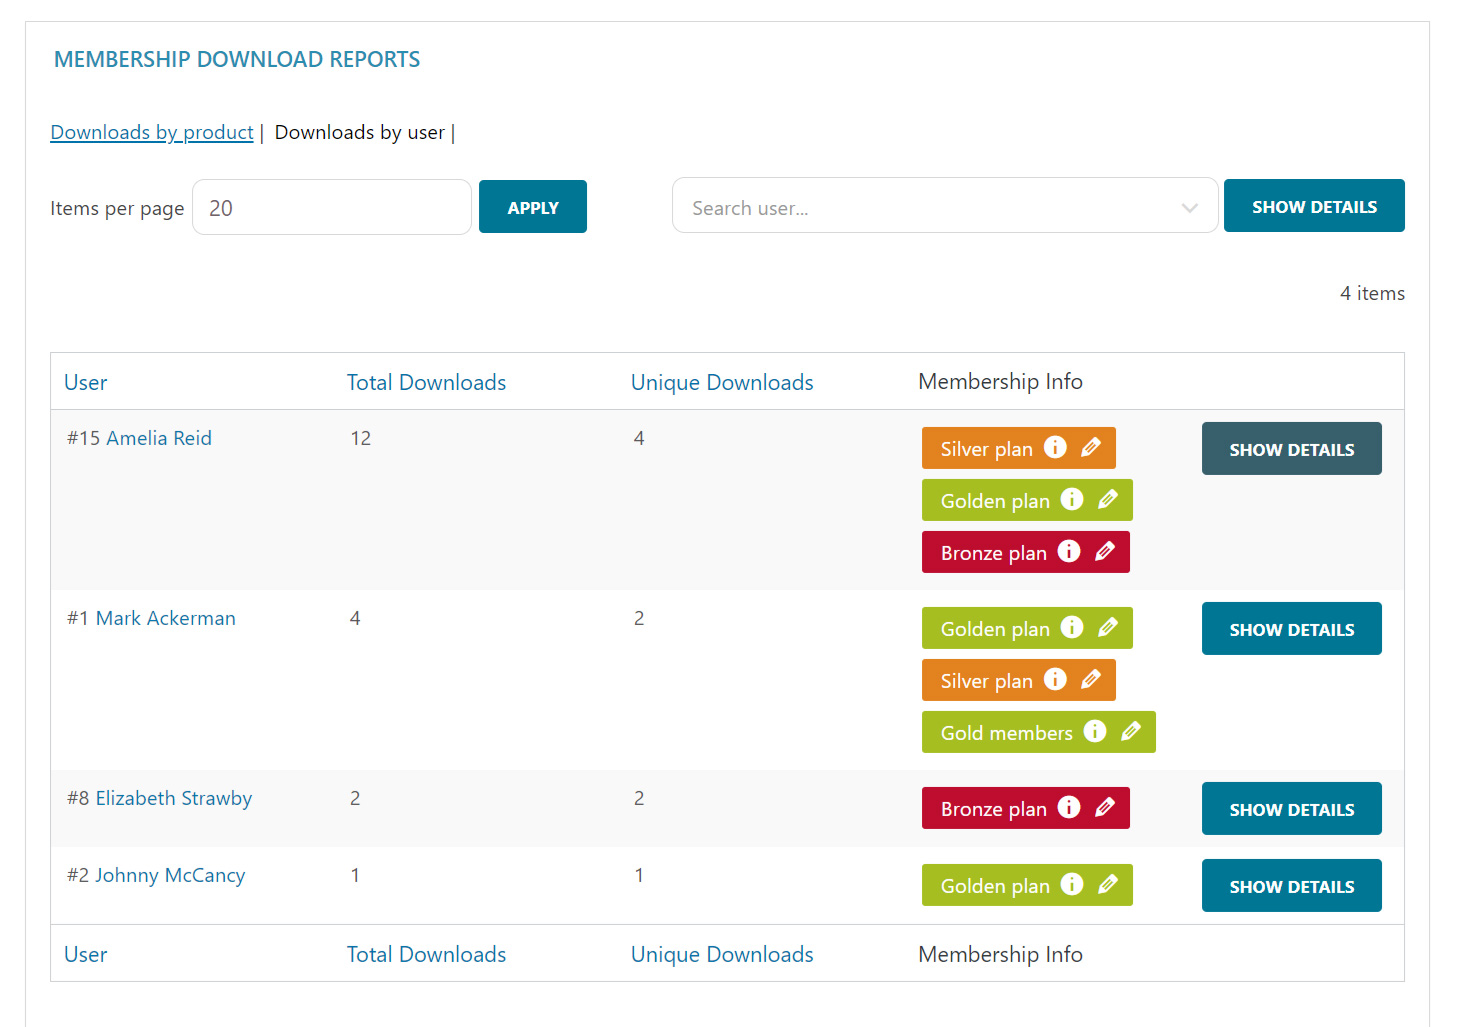 Downloads by user